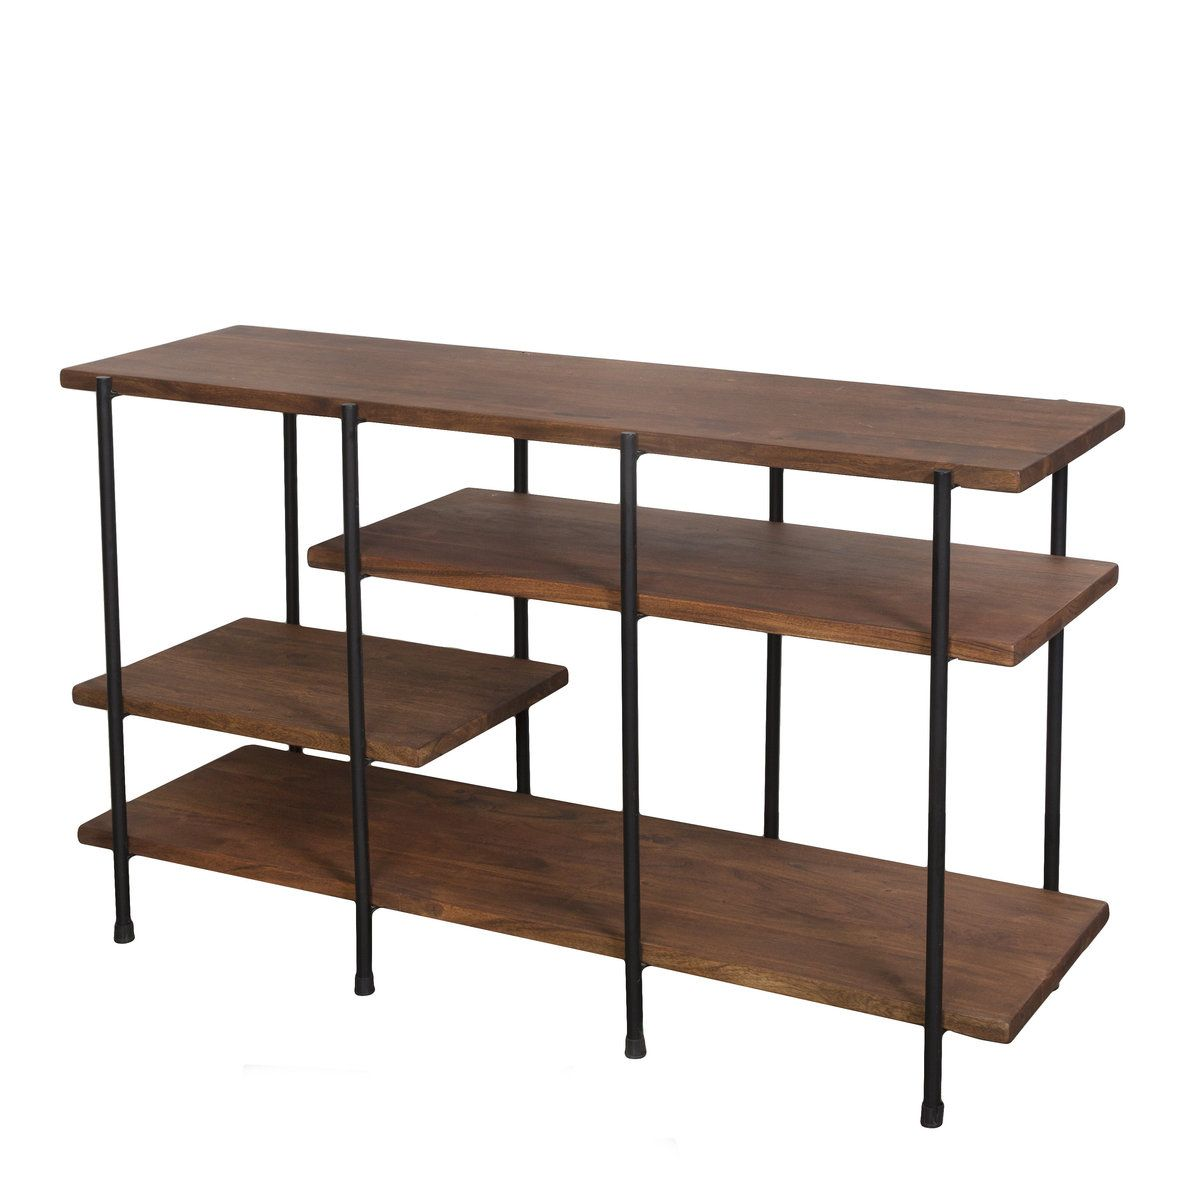 Foundry Multi Level Console Table | Foundry | Collections | LH Imports